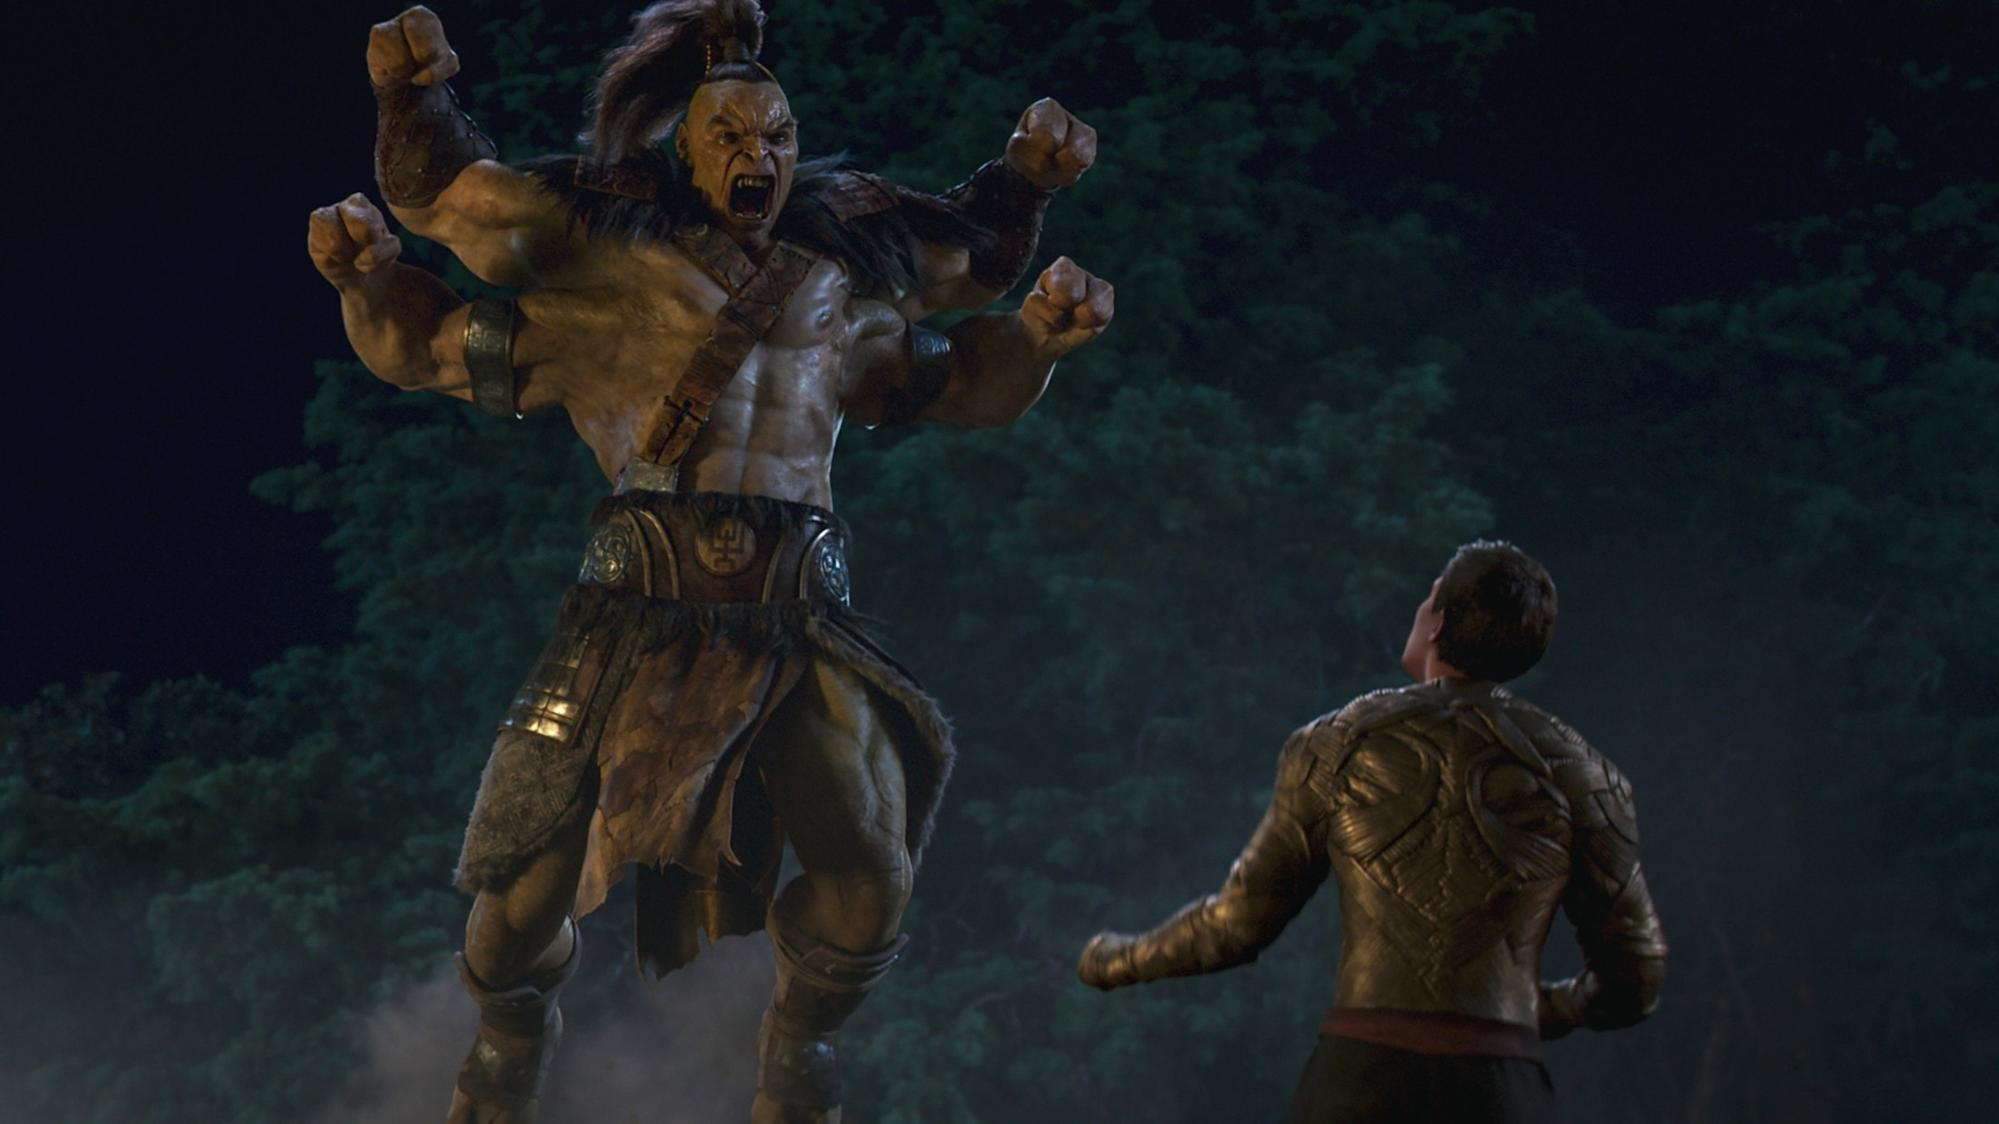 news.yahoo.com: Fatality meets diversity: How 'Mortal Kombat' mixes 'buckets of blood' with a more authentically diverse cast